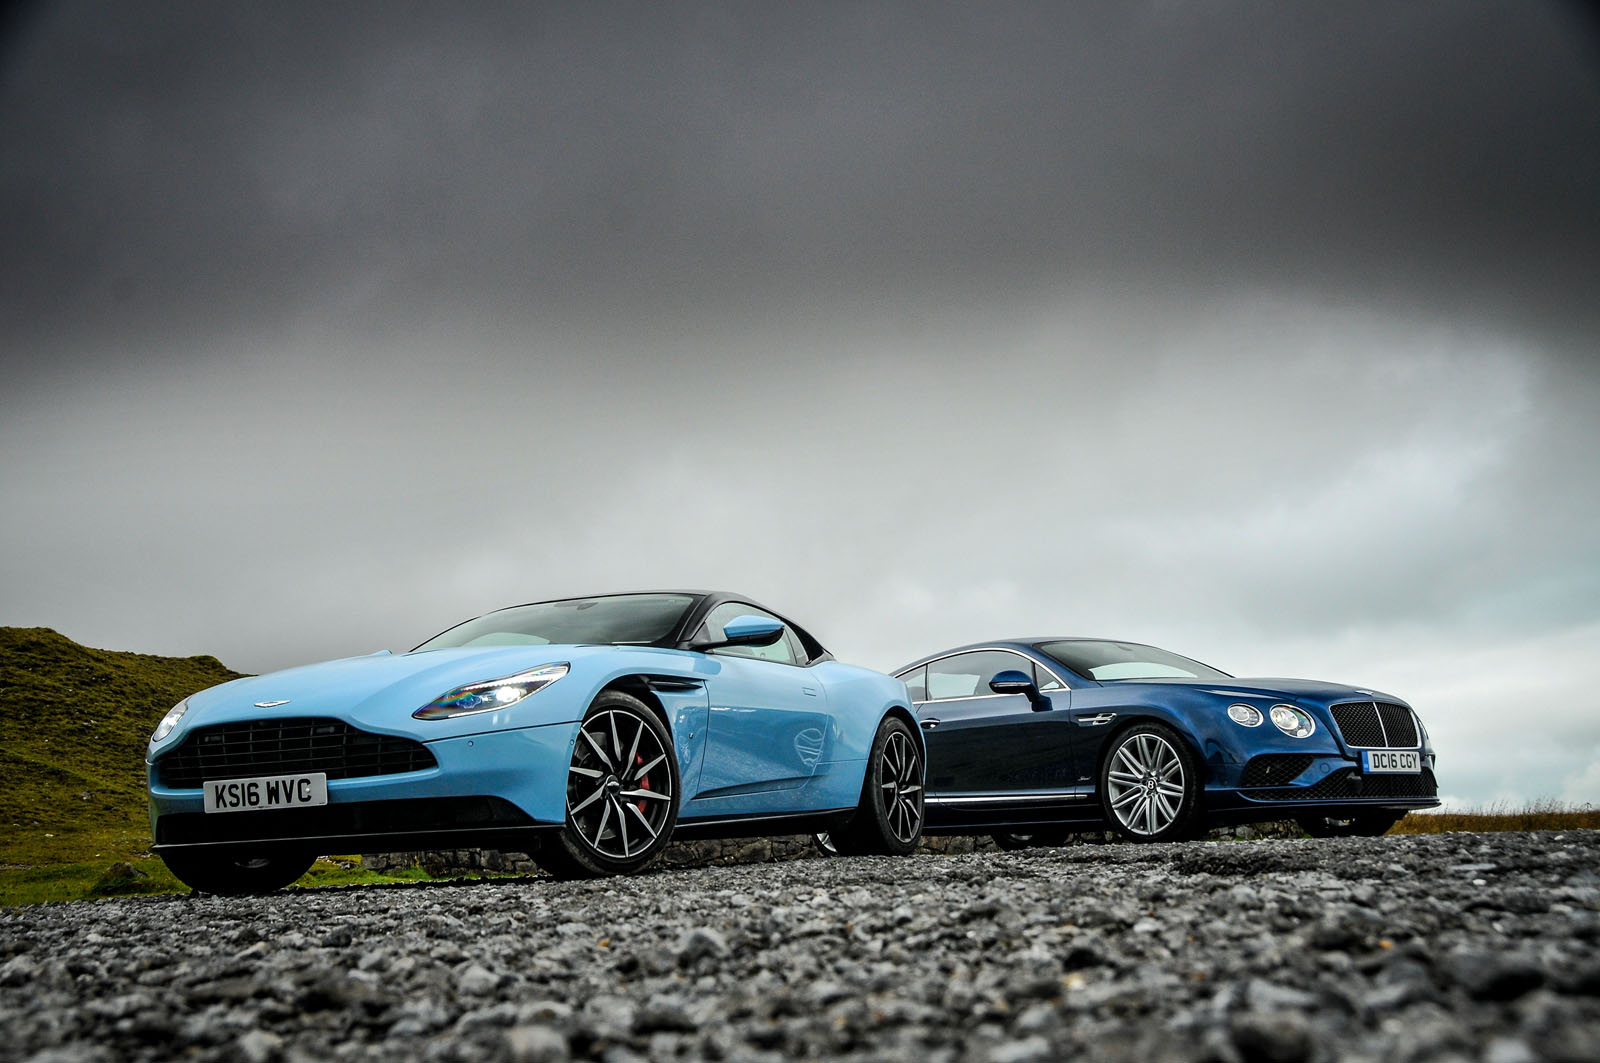 Aston Martin DB11 vs Bentley Continental GT Speed - grand tourers compared